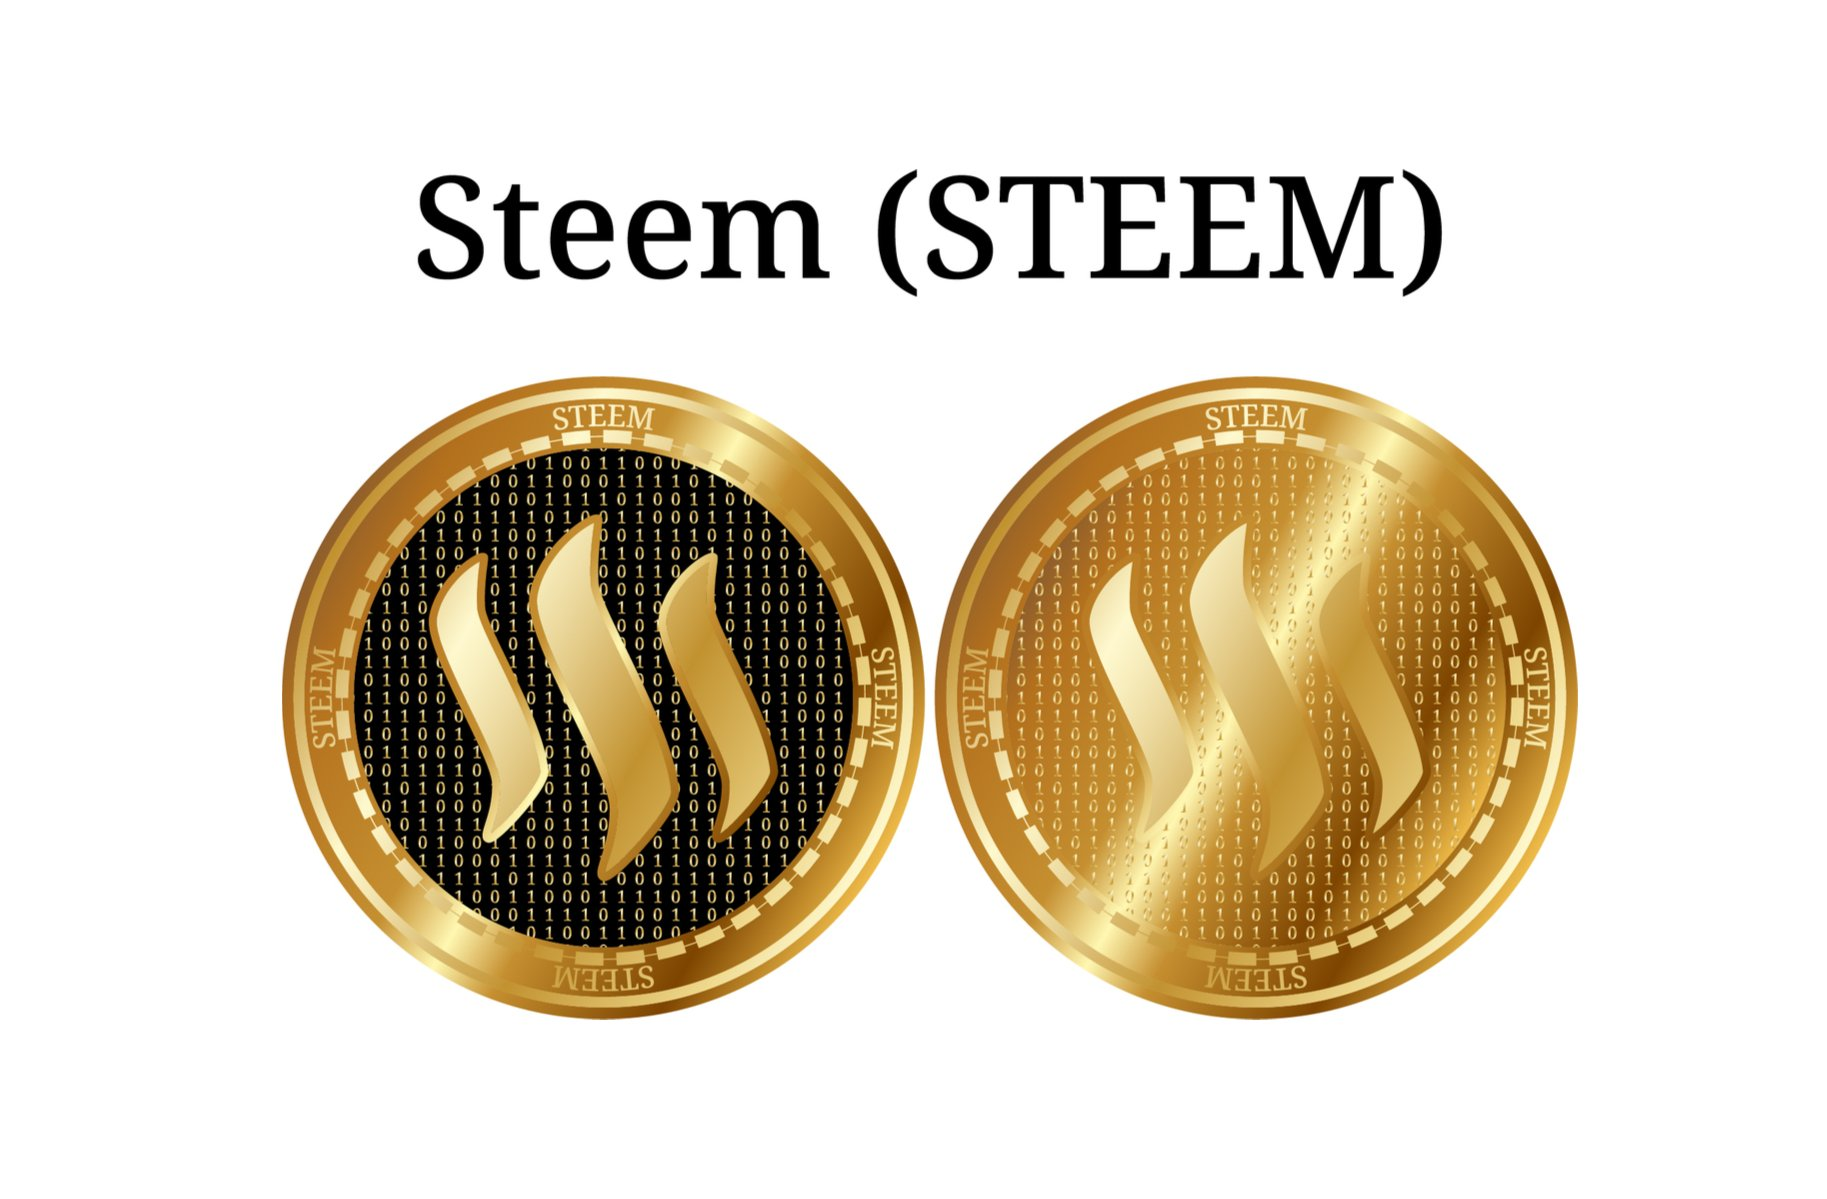 golden STEEM coins